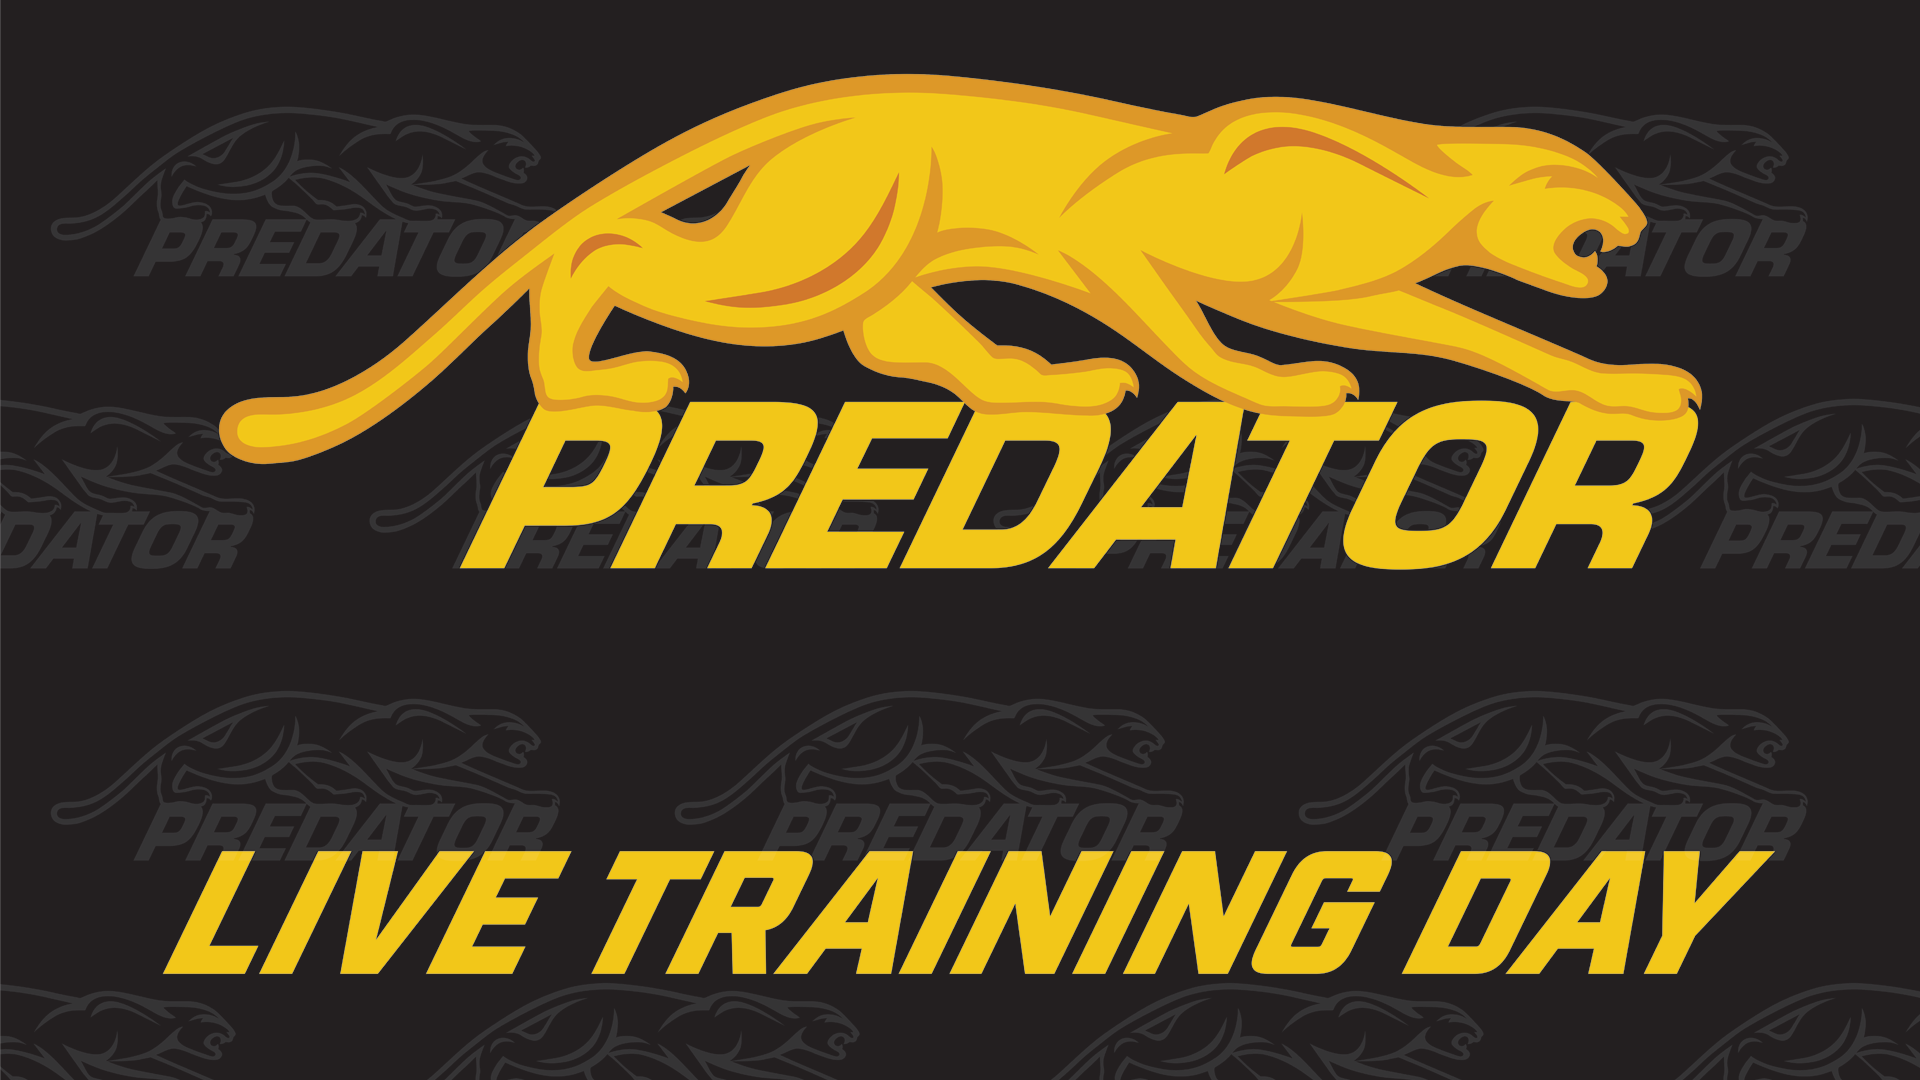 PREDATOR LIVE TRAINING DAY TO BRING FANS UNIQUE INSIGHT AHEAD OF PARTYPOKER MOSCONI CUP